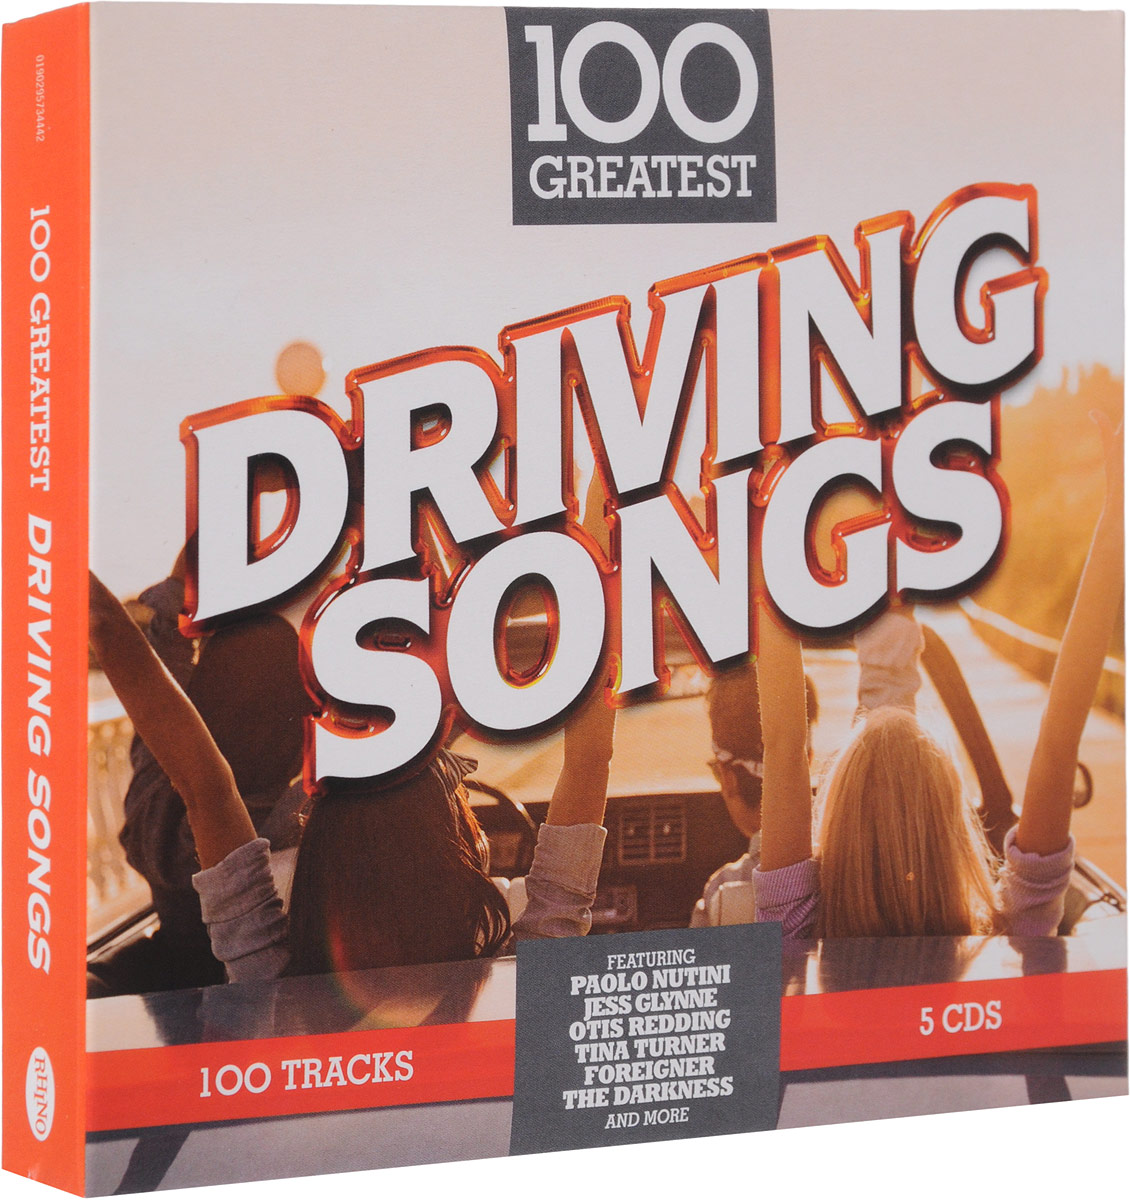 100 Greatest Driving Songs (Special Price Limited Time) (5 CD)